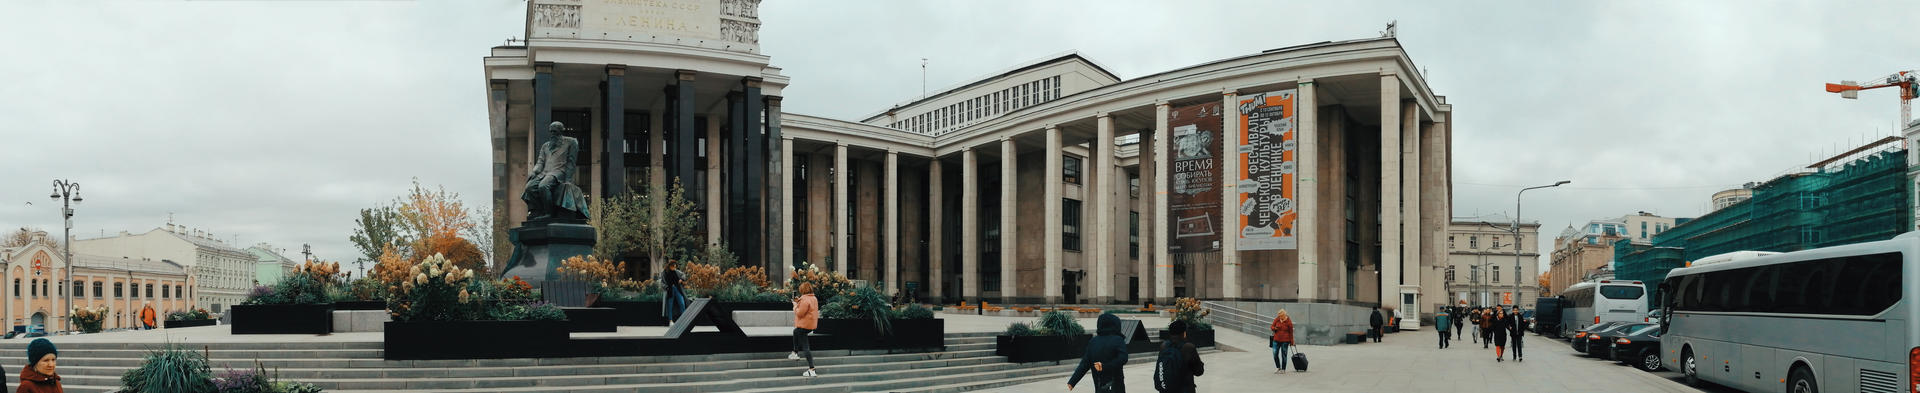 Moscow. The Russian State Library. October 2019